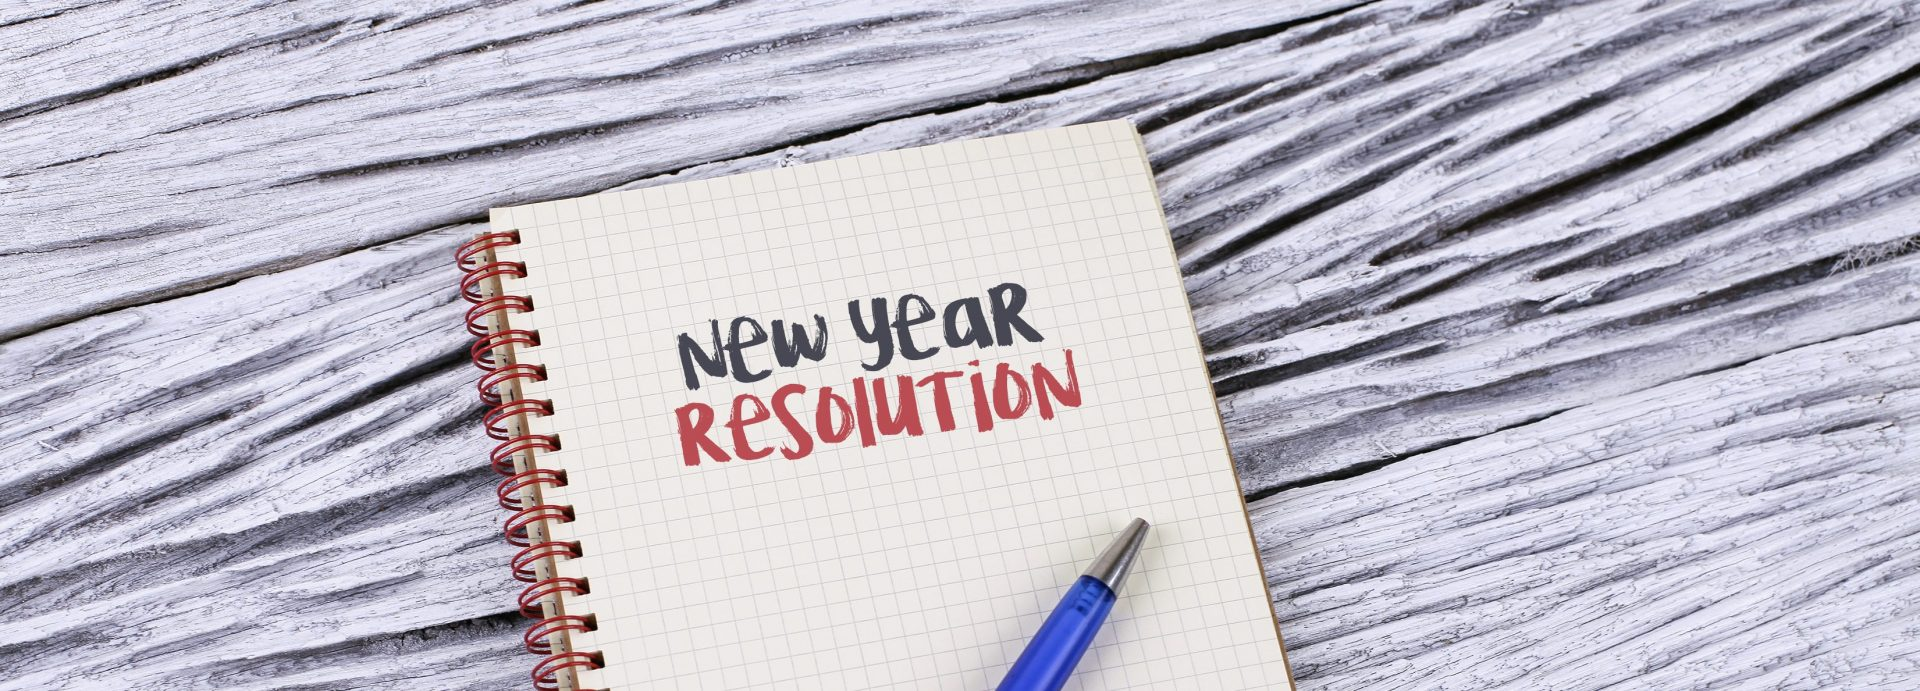 Pest control company and 2017 New Years resolutions